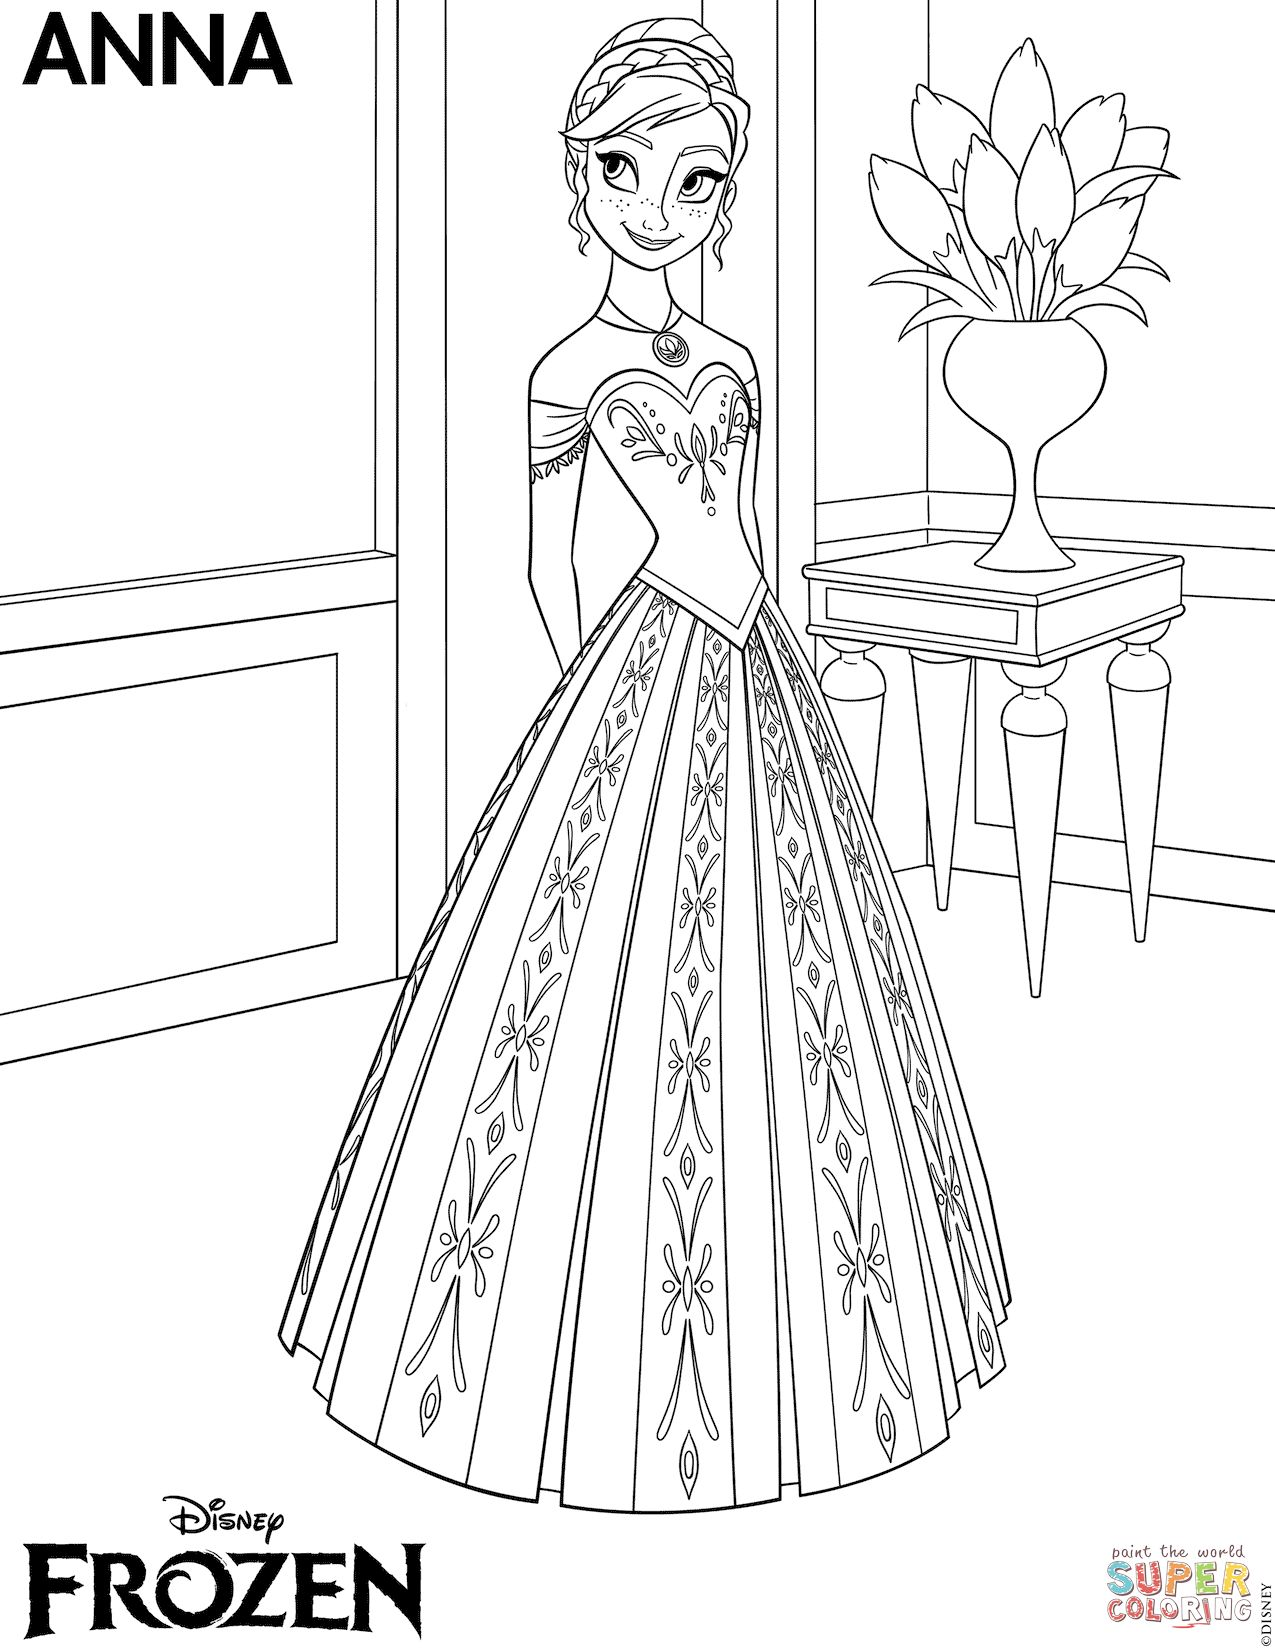 Anna Coloring Pages The Frozen Coloring Pages Free Coloring Pages Entitlementtrap Com Frozen Coloring Pages Elsa Coloring Pages Frozen Coloring Sheets